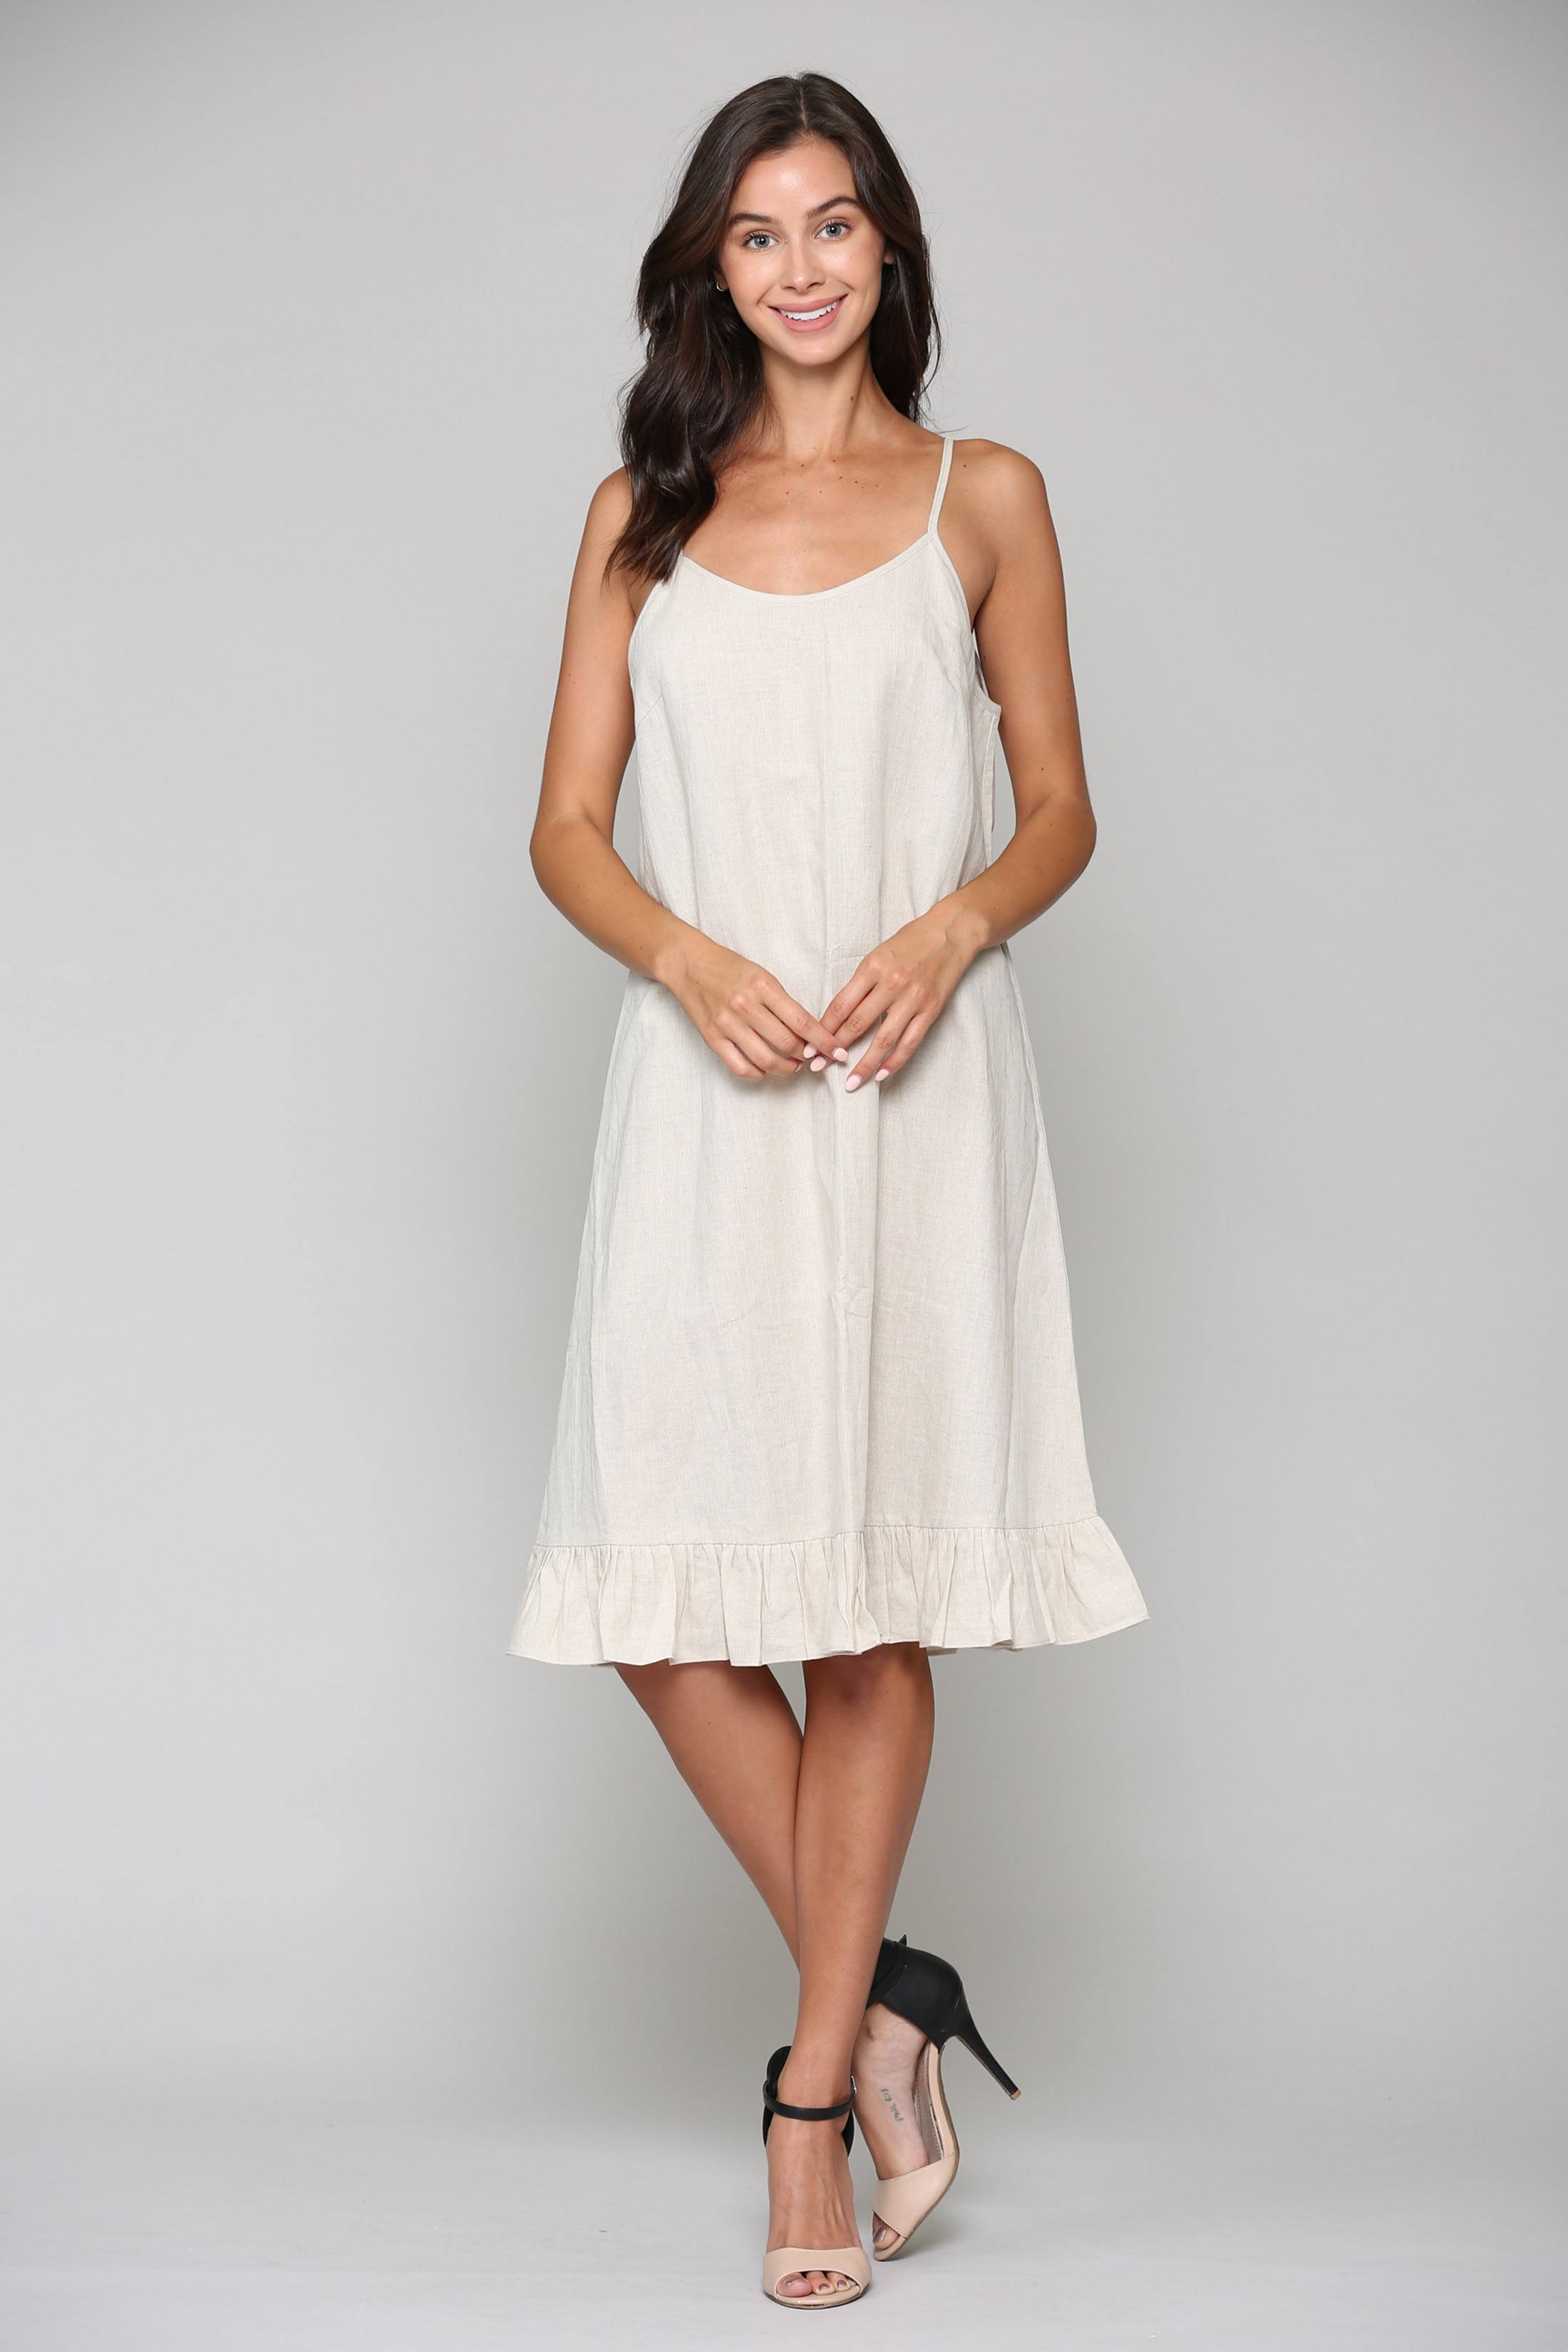 Lola Dress - Off White - Front